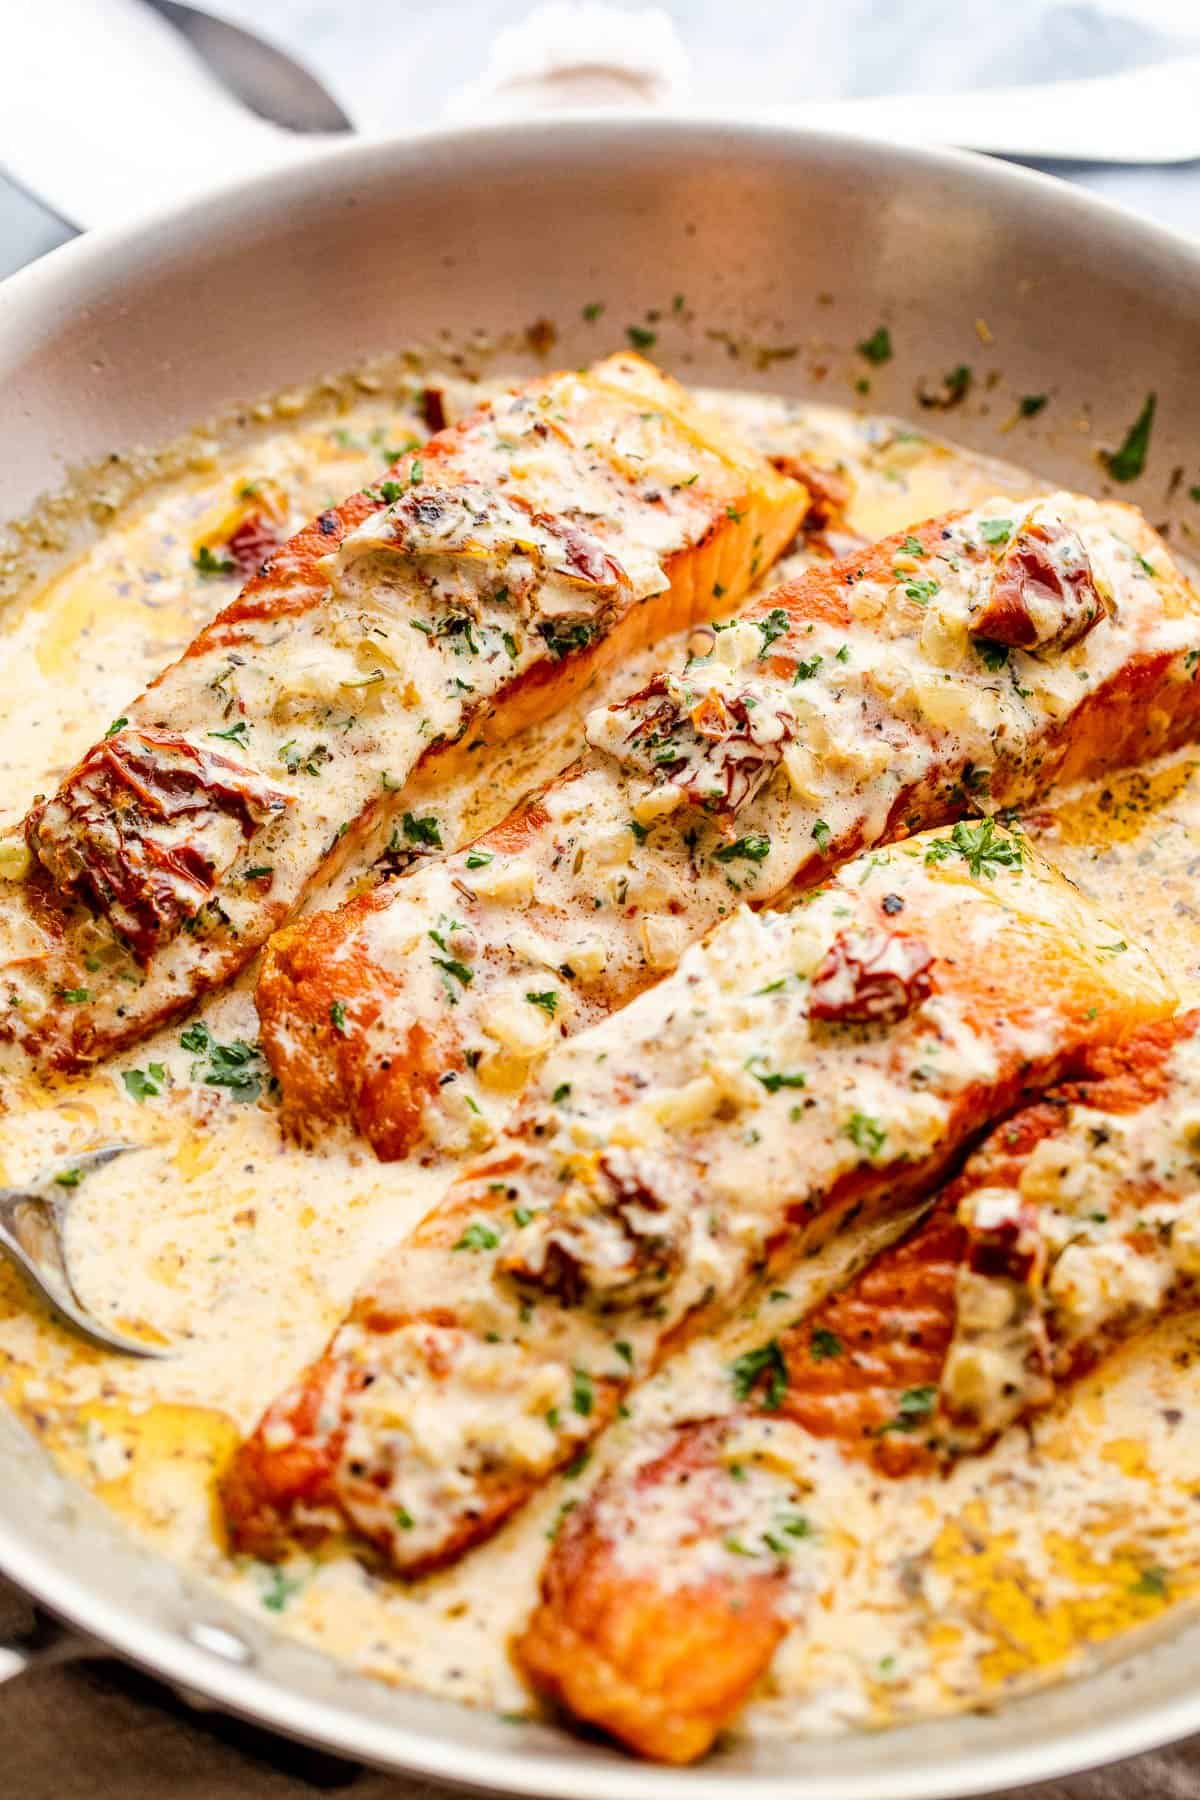 four salmon fillets in a skillet with cream sauce